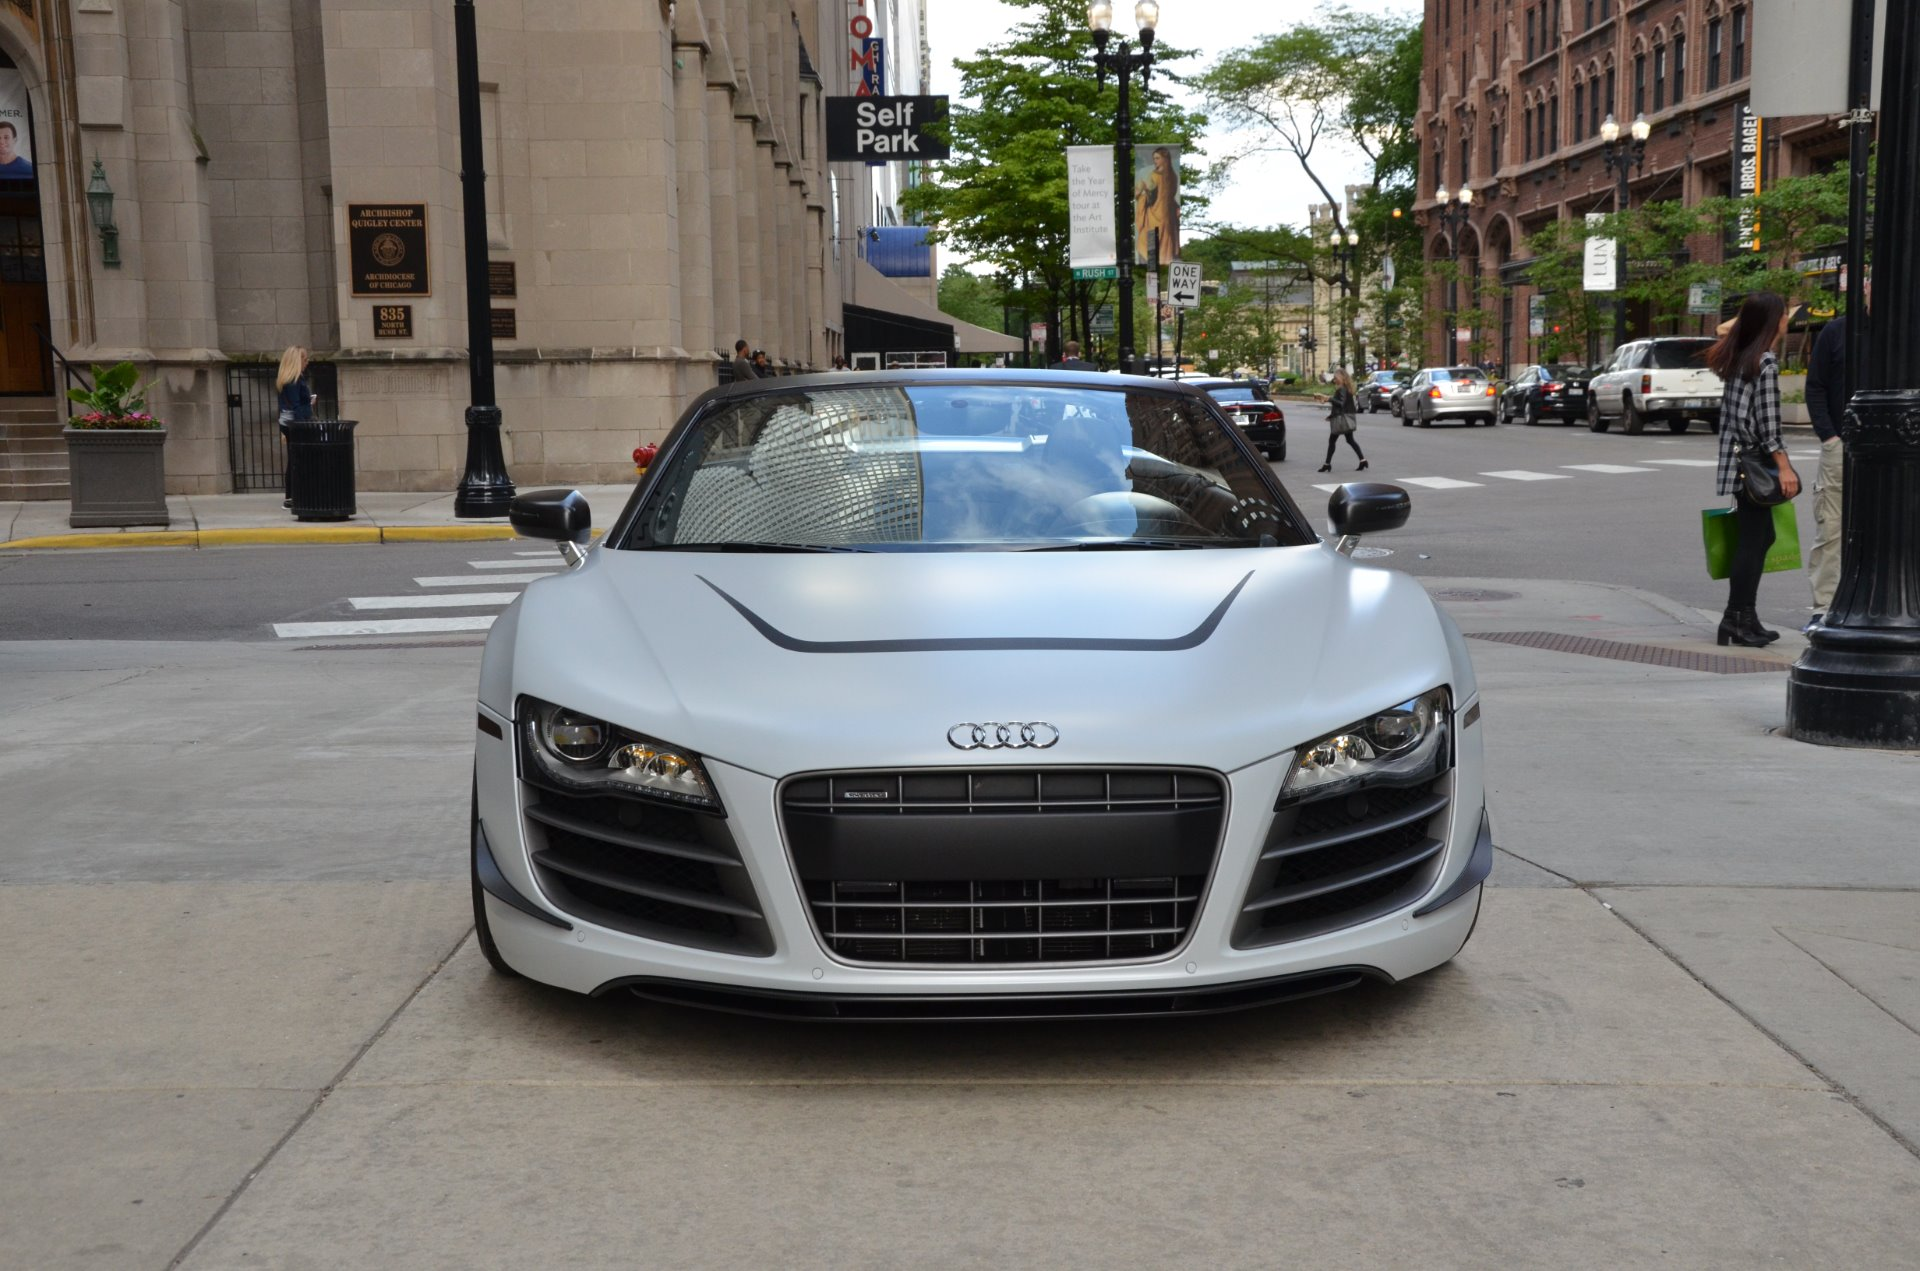 2012 Audi R8 Gt 5 2 Quattro Spyder Stock L373b For Sale